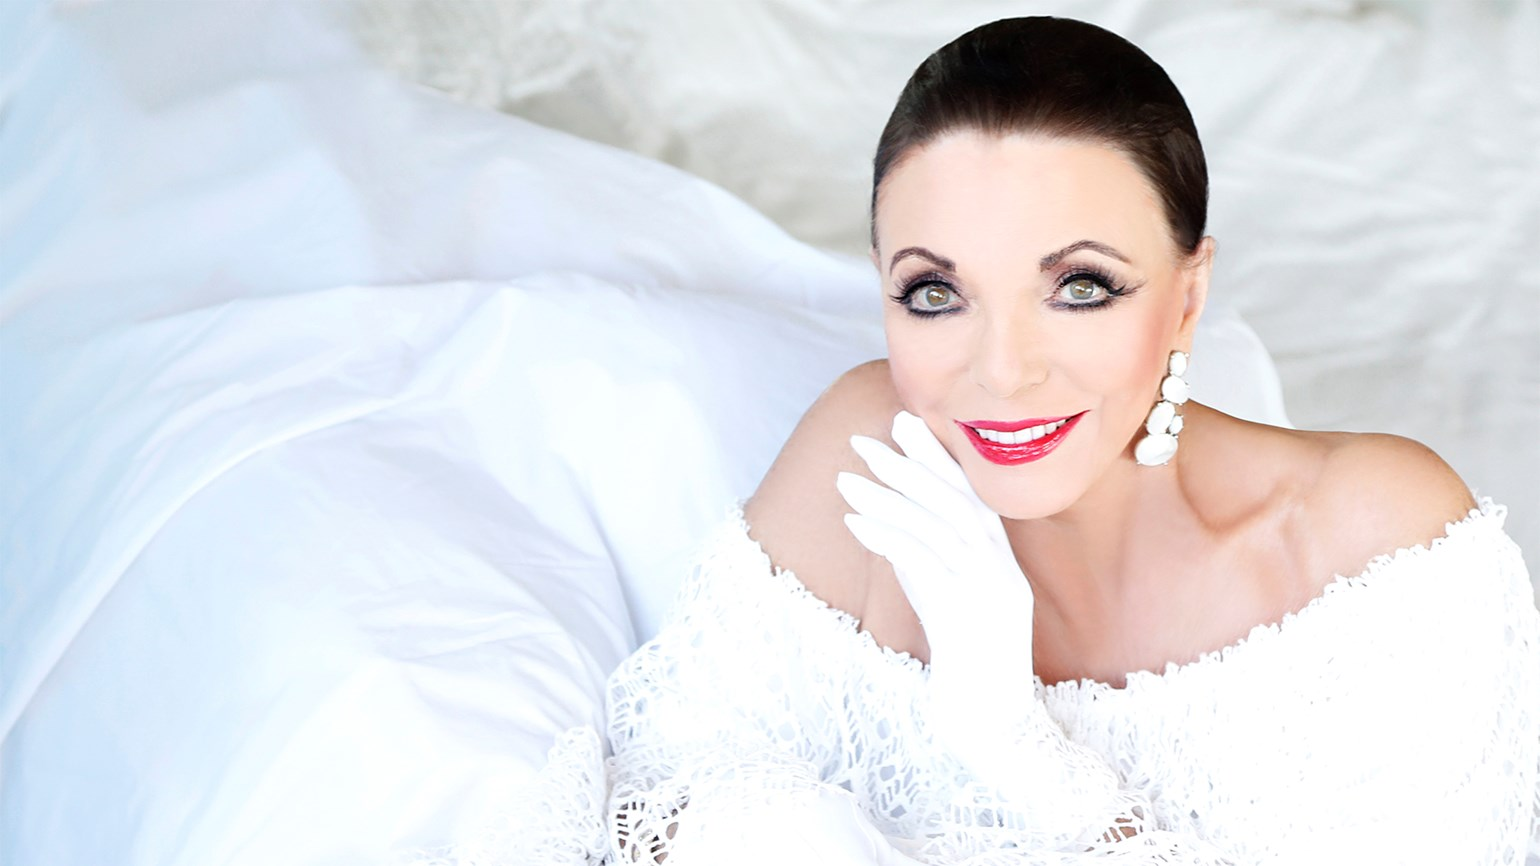 Joan Collins to christen Uniworld's S.S. Joie de Vivre